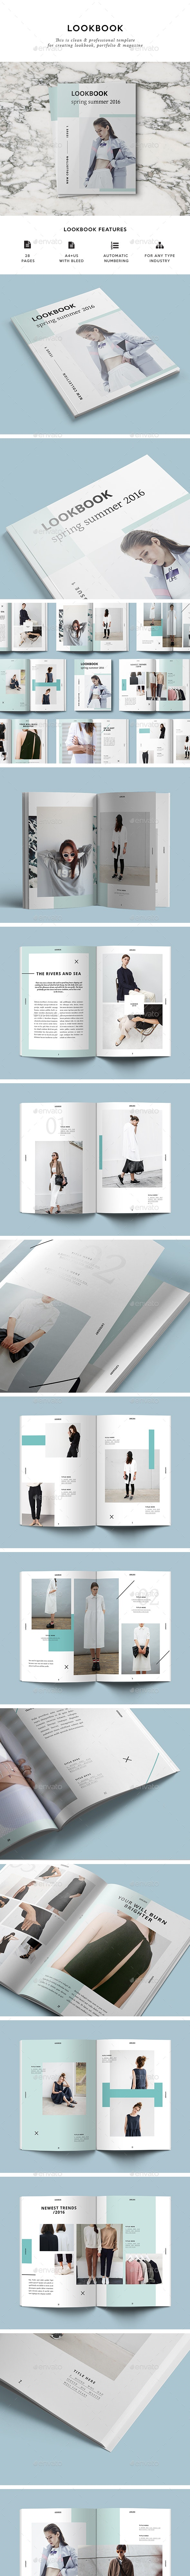 LookBook - Magazines Print Templates